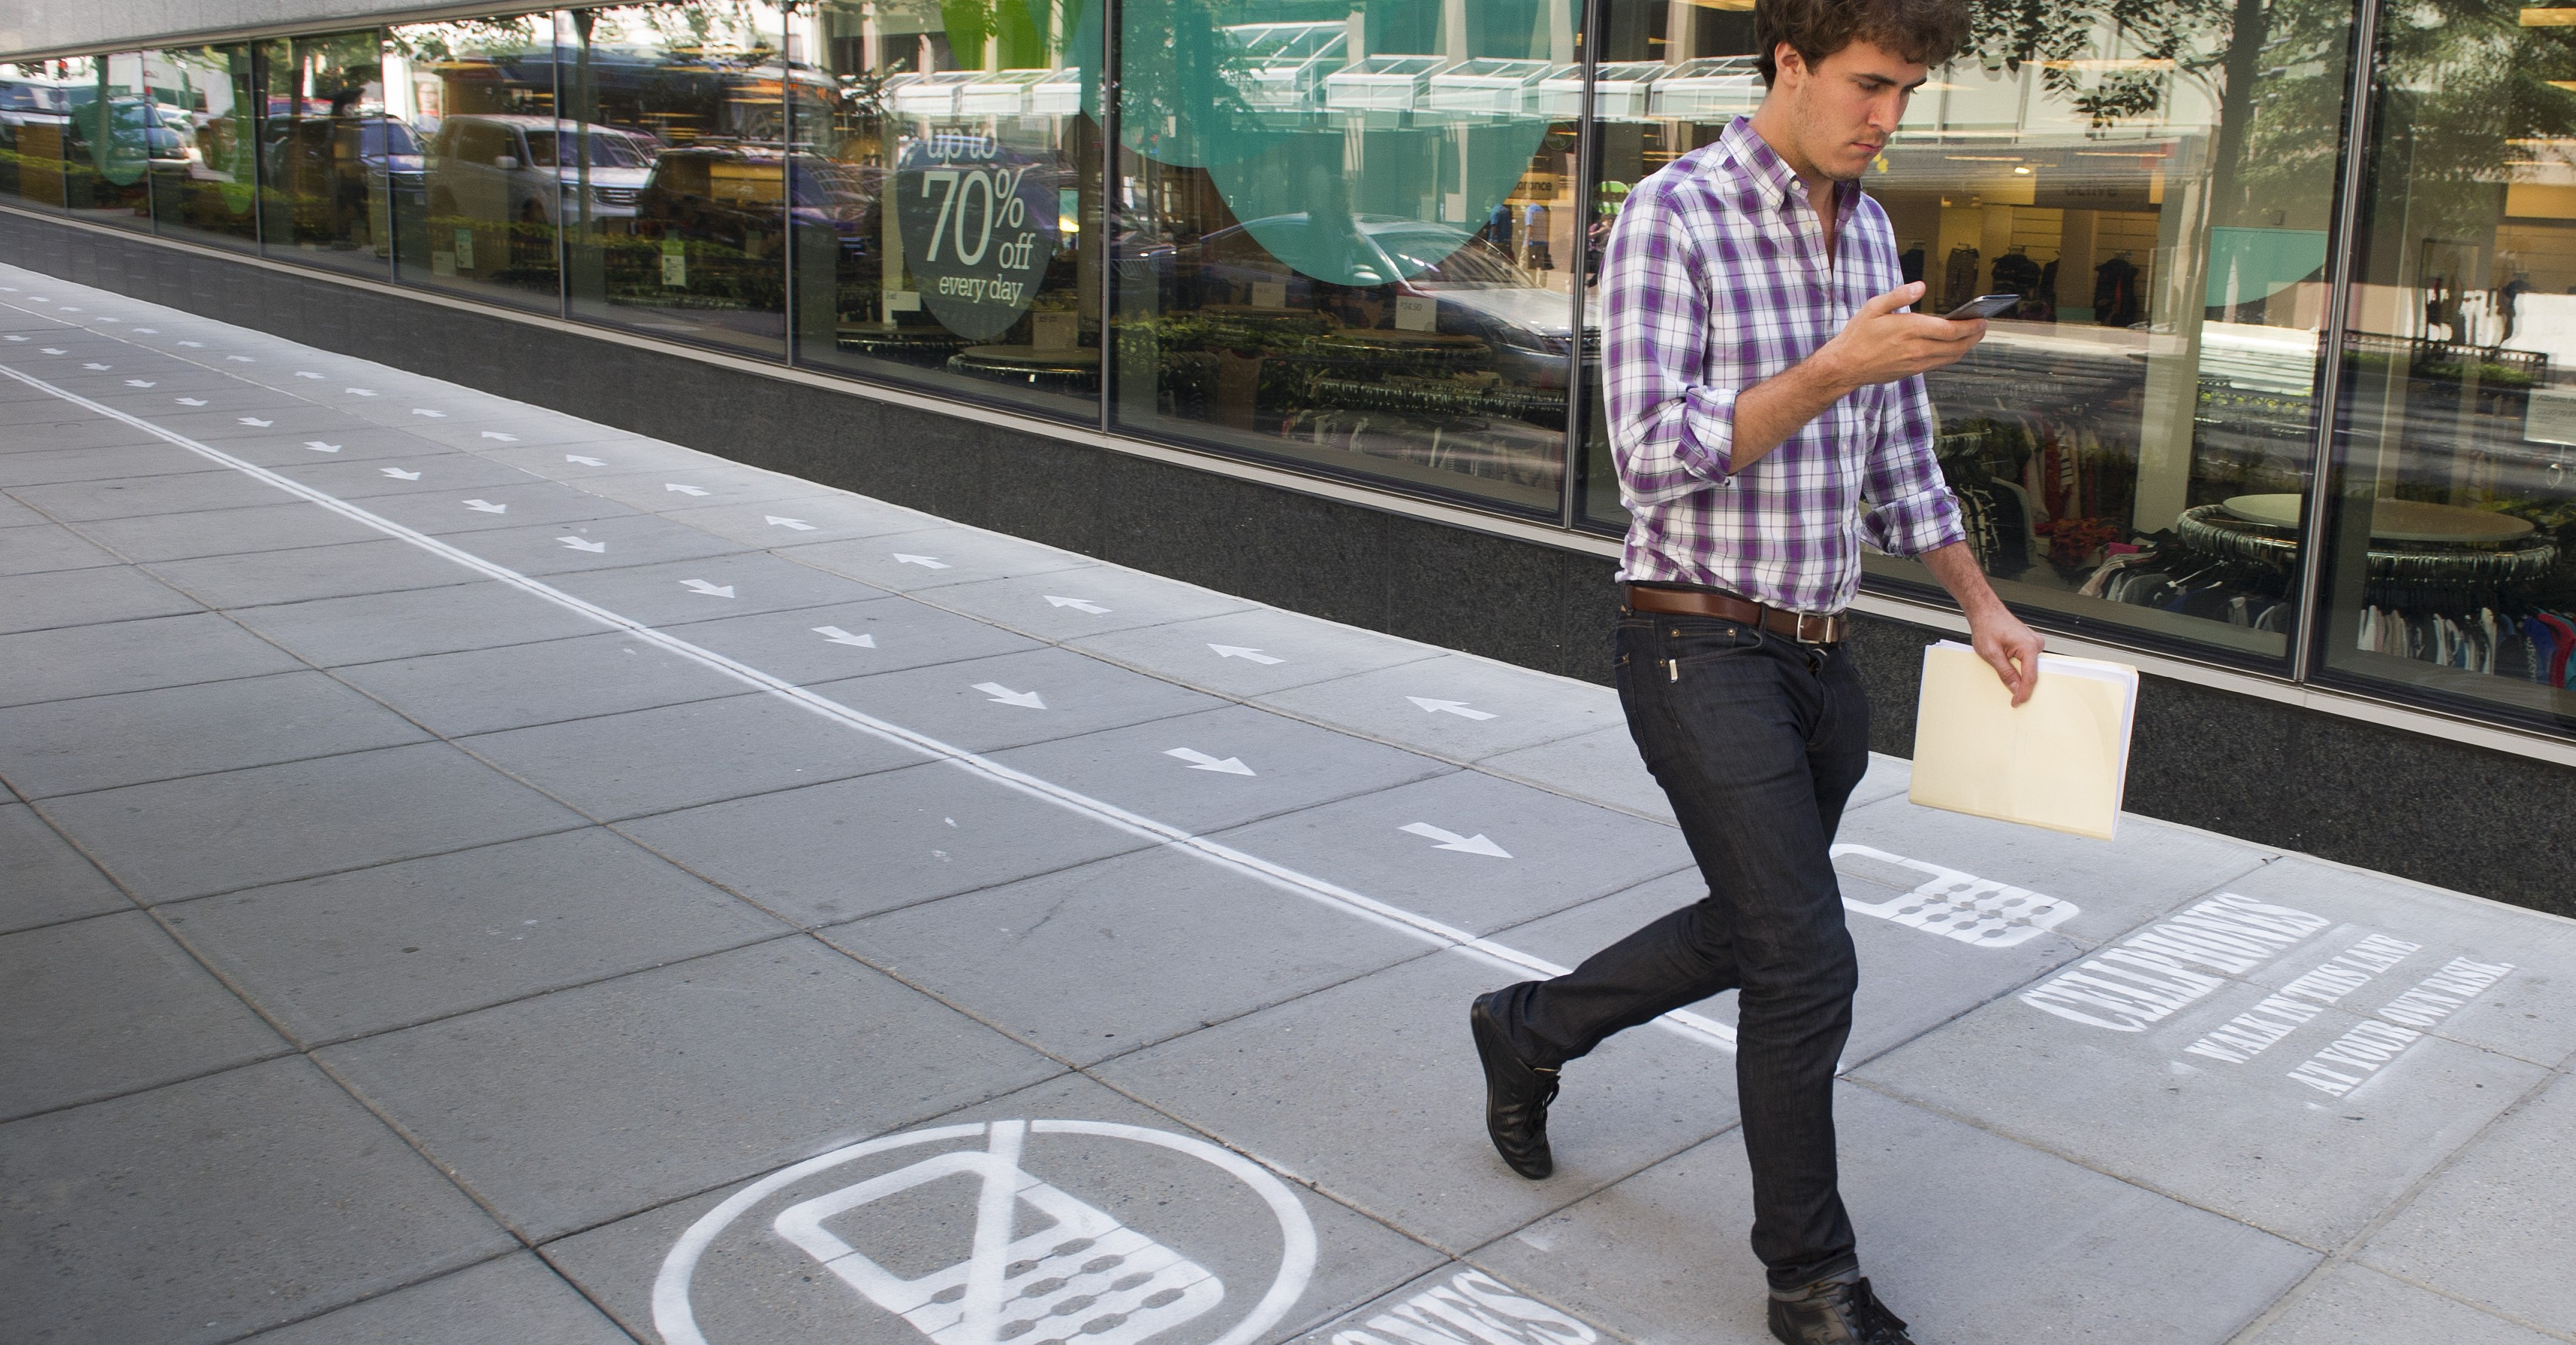 As part of their Mind Over Masses television show, National Geographic has divided a one block-long sidewalk into two sections; one for cell phone users and the other for those not using a cell phone in downtown Washington,